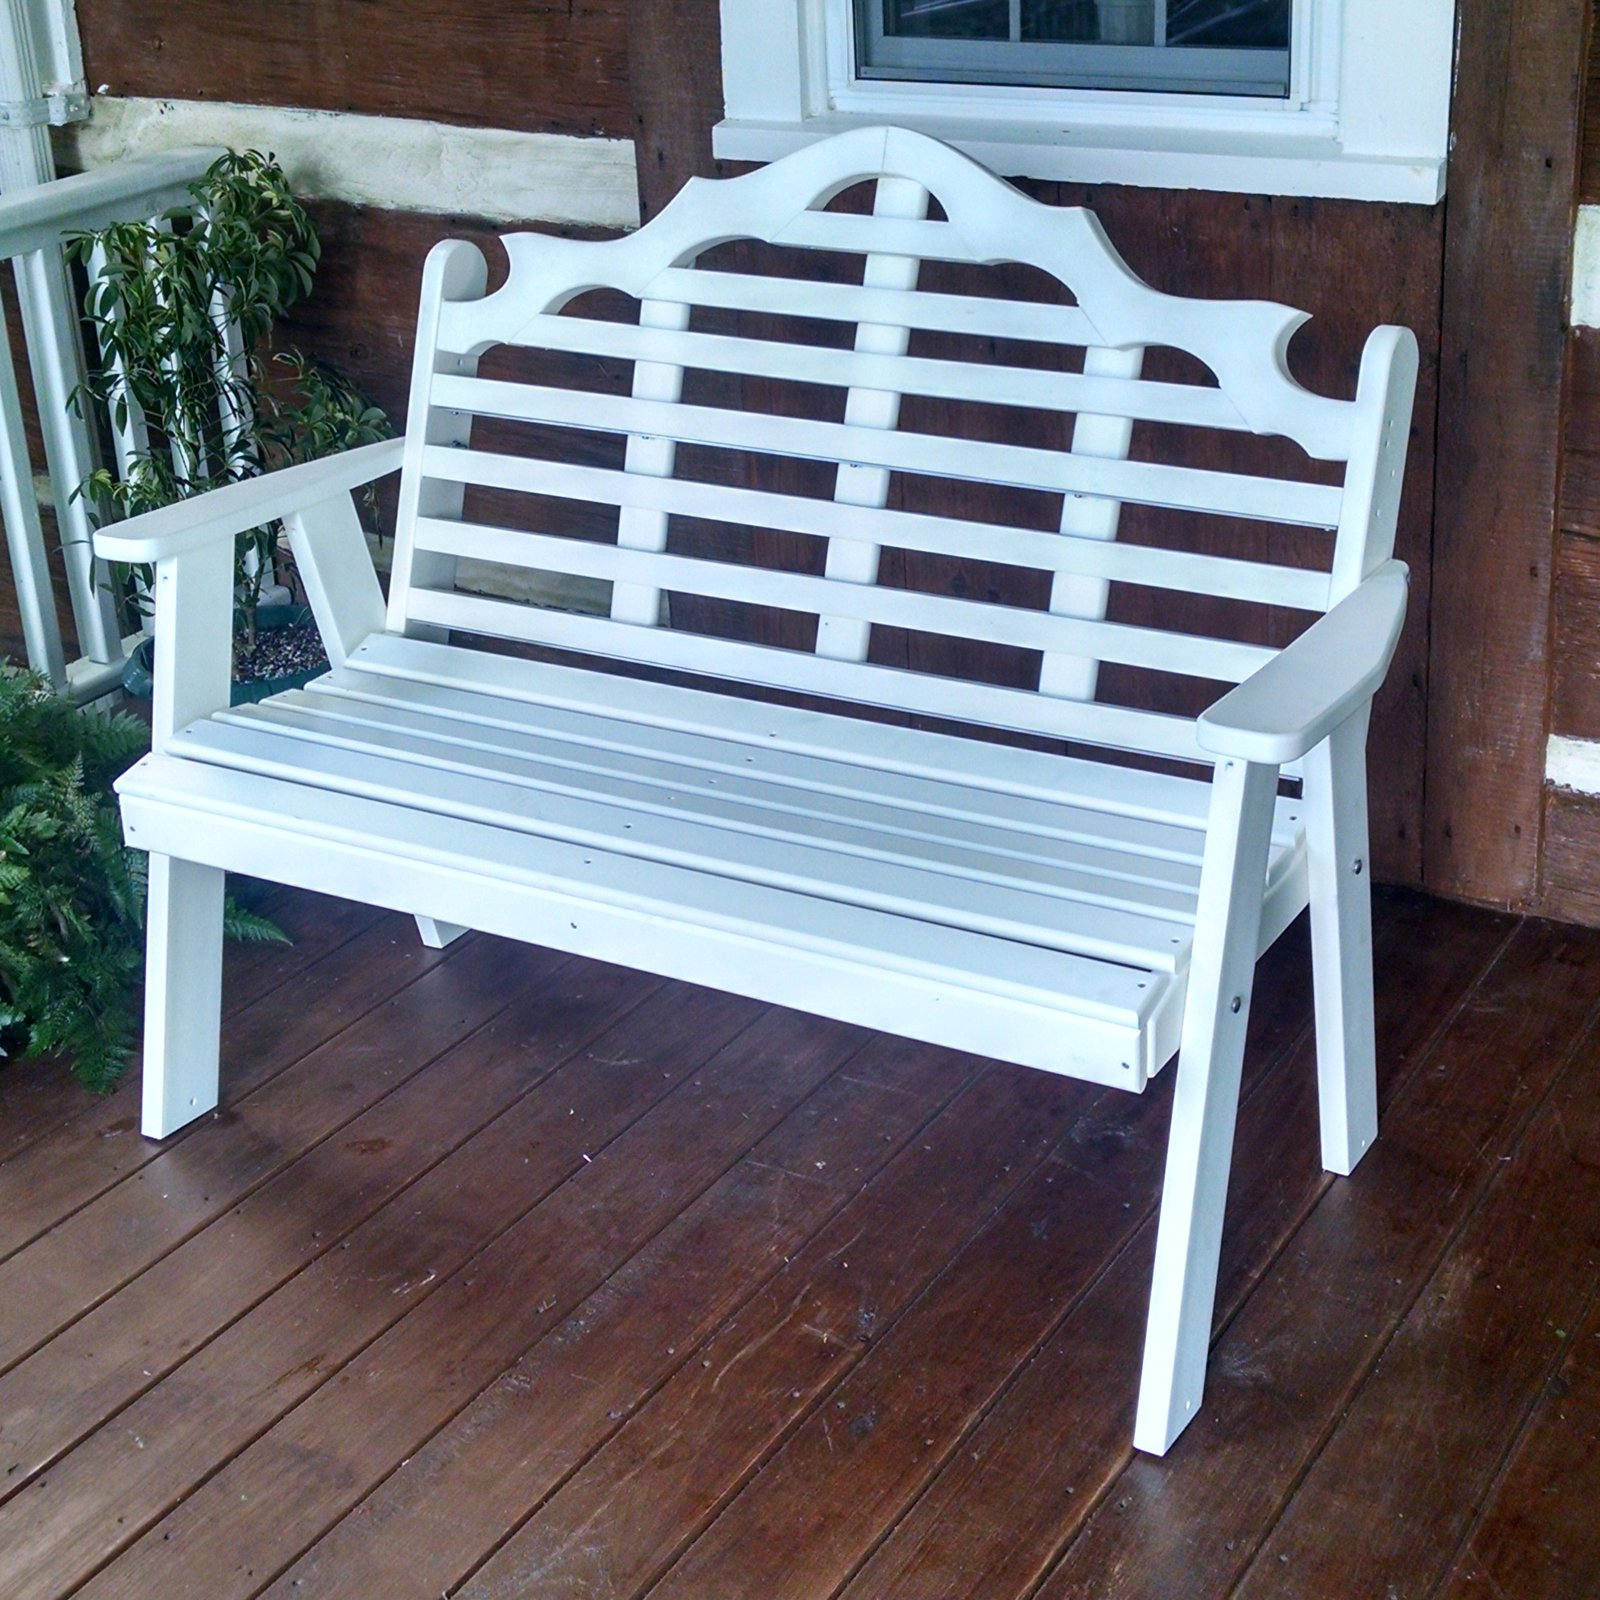 A & L Furniture Marlboro Poly Recycled Plastic Garden Bench by A and L Furniture Co